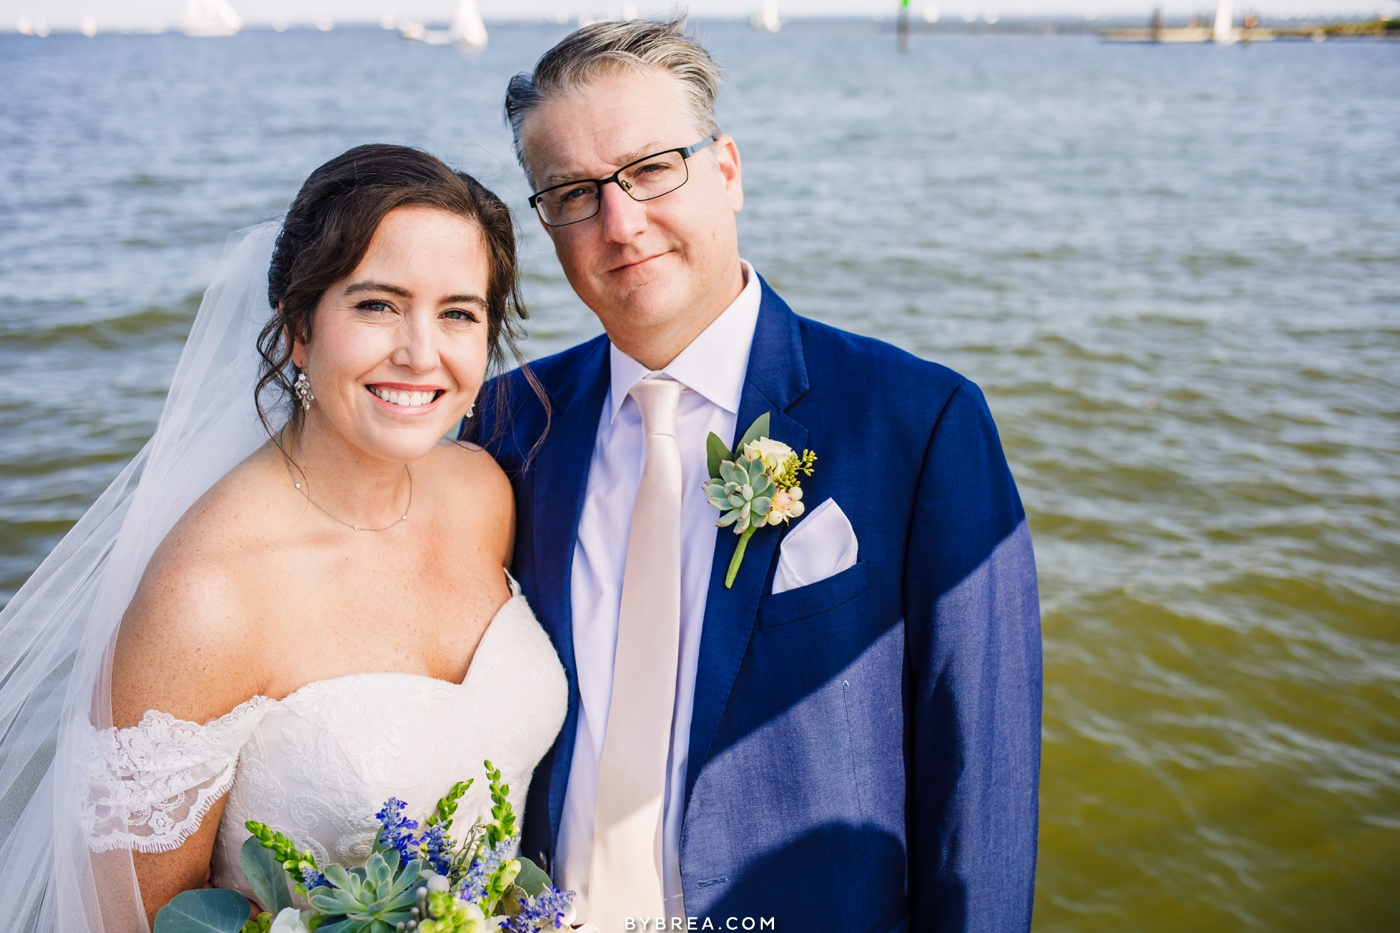 Bride and groom portrait at Annapolis Maritime Museum. Wedding photography by Baltimore Wedding Photographer, Photography by Brea.